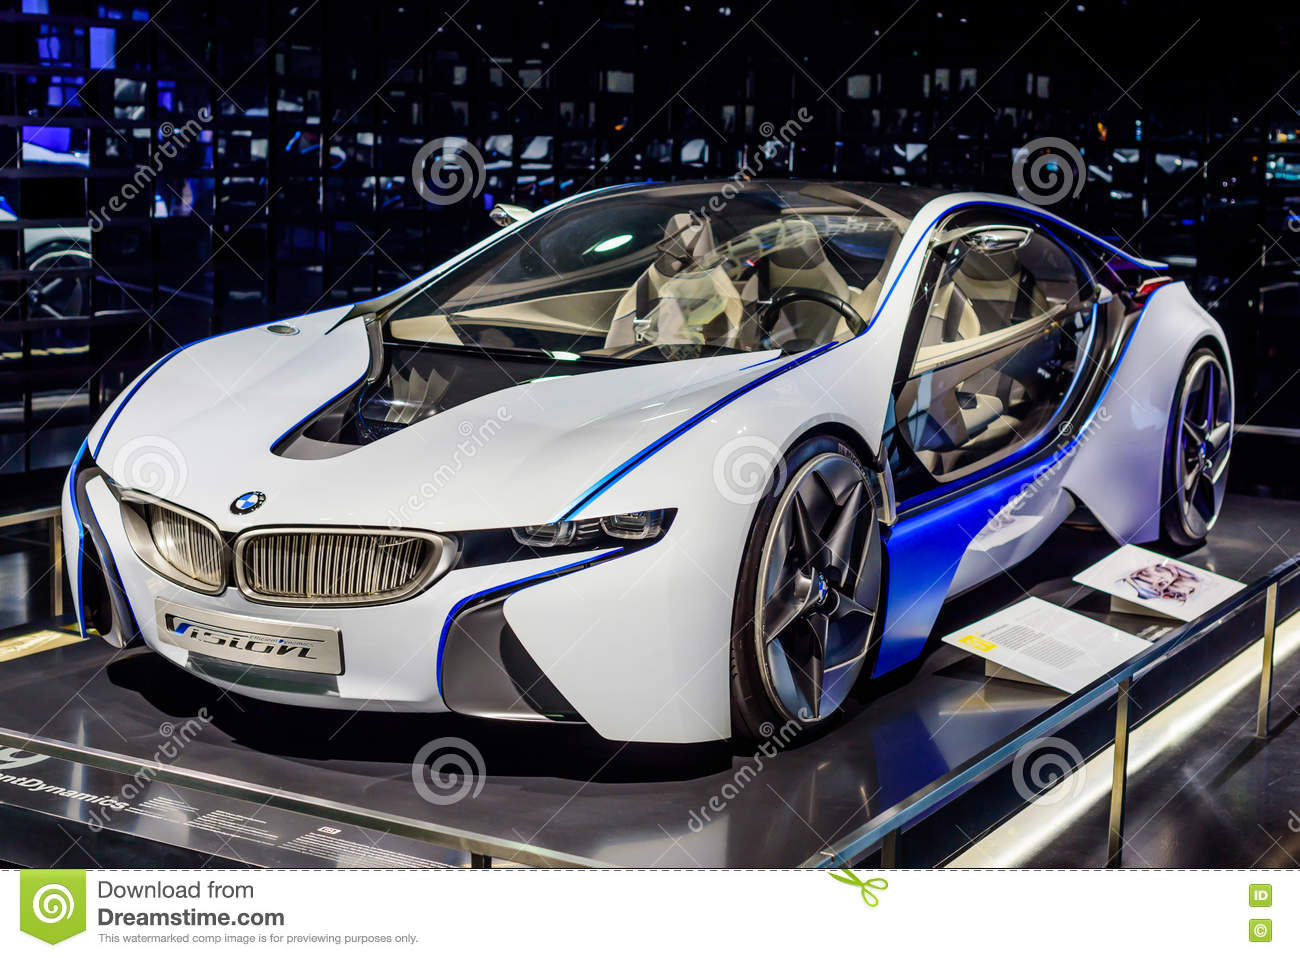 munich germany april 19 2016 futuristic bmw car editorial image image of efficient. Black Bedroom Furniture Sets. Home Design Ideas